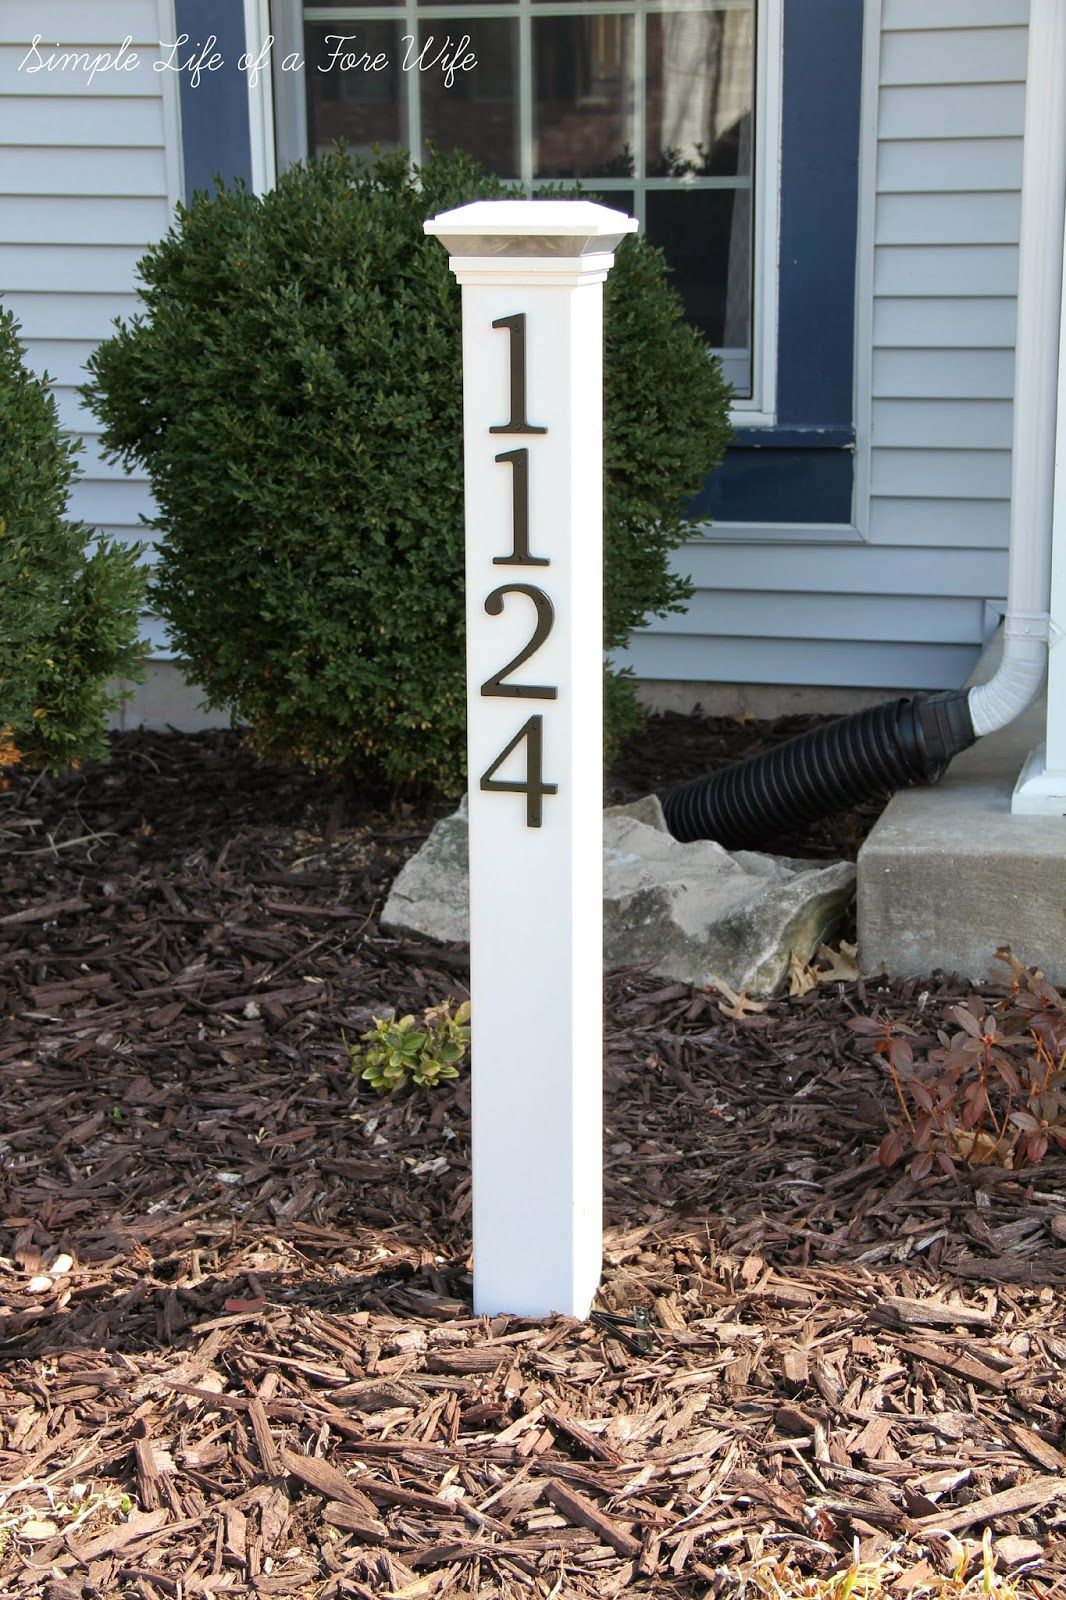 Simple Life Of A Fire Wife House Number Post House